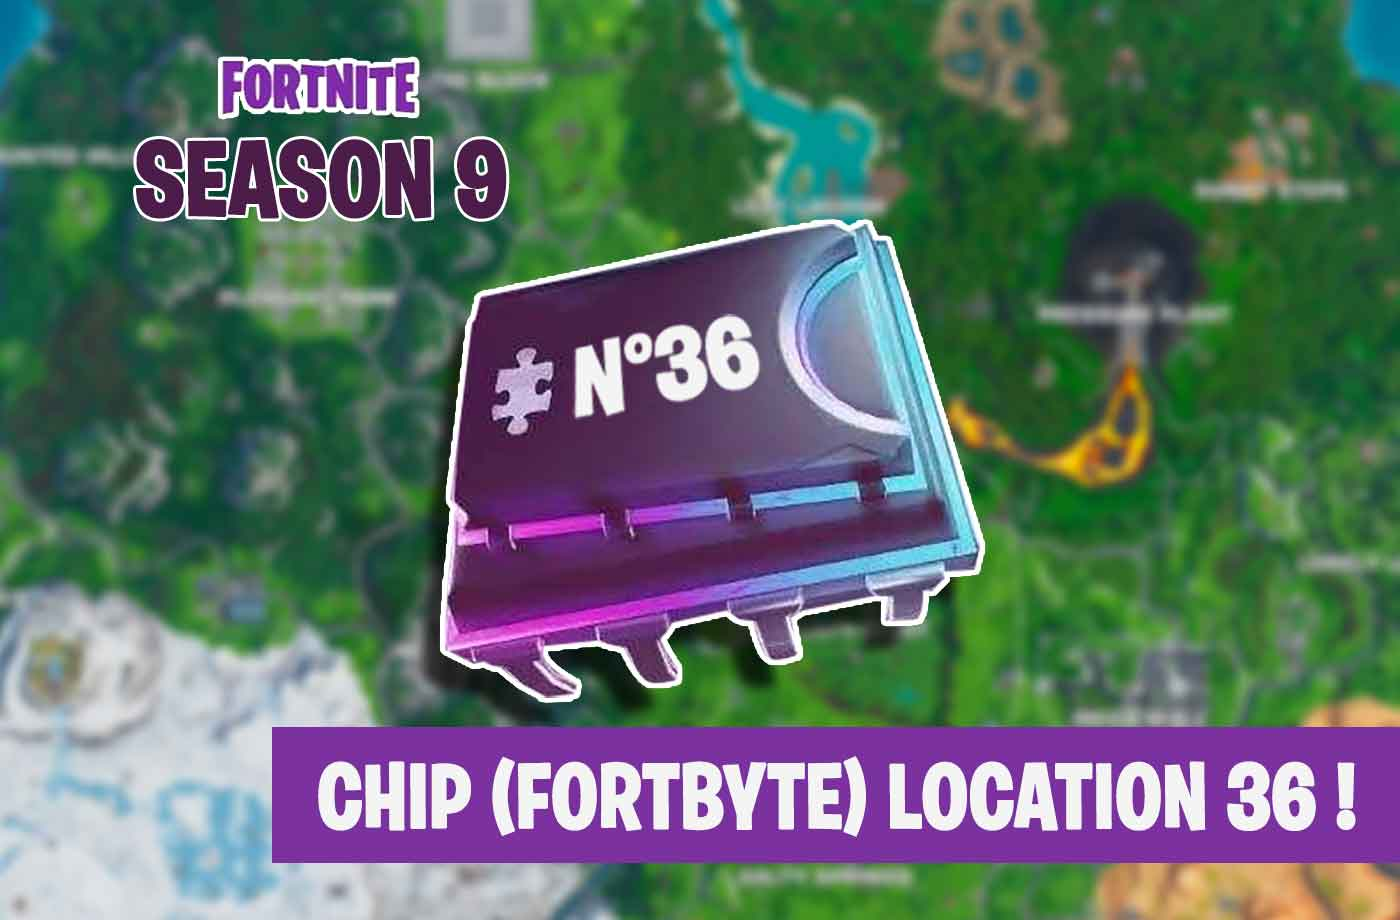 Guide Fortnite season 9 how to get the Fortbyte number 36 (computer